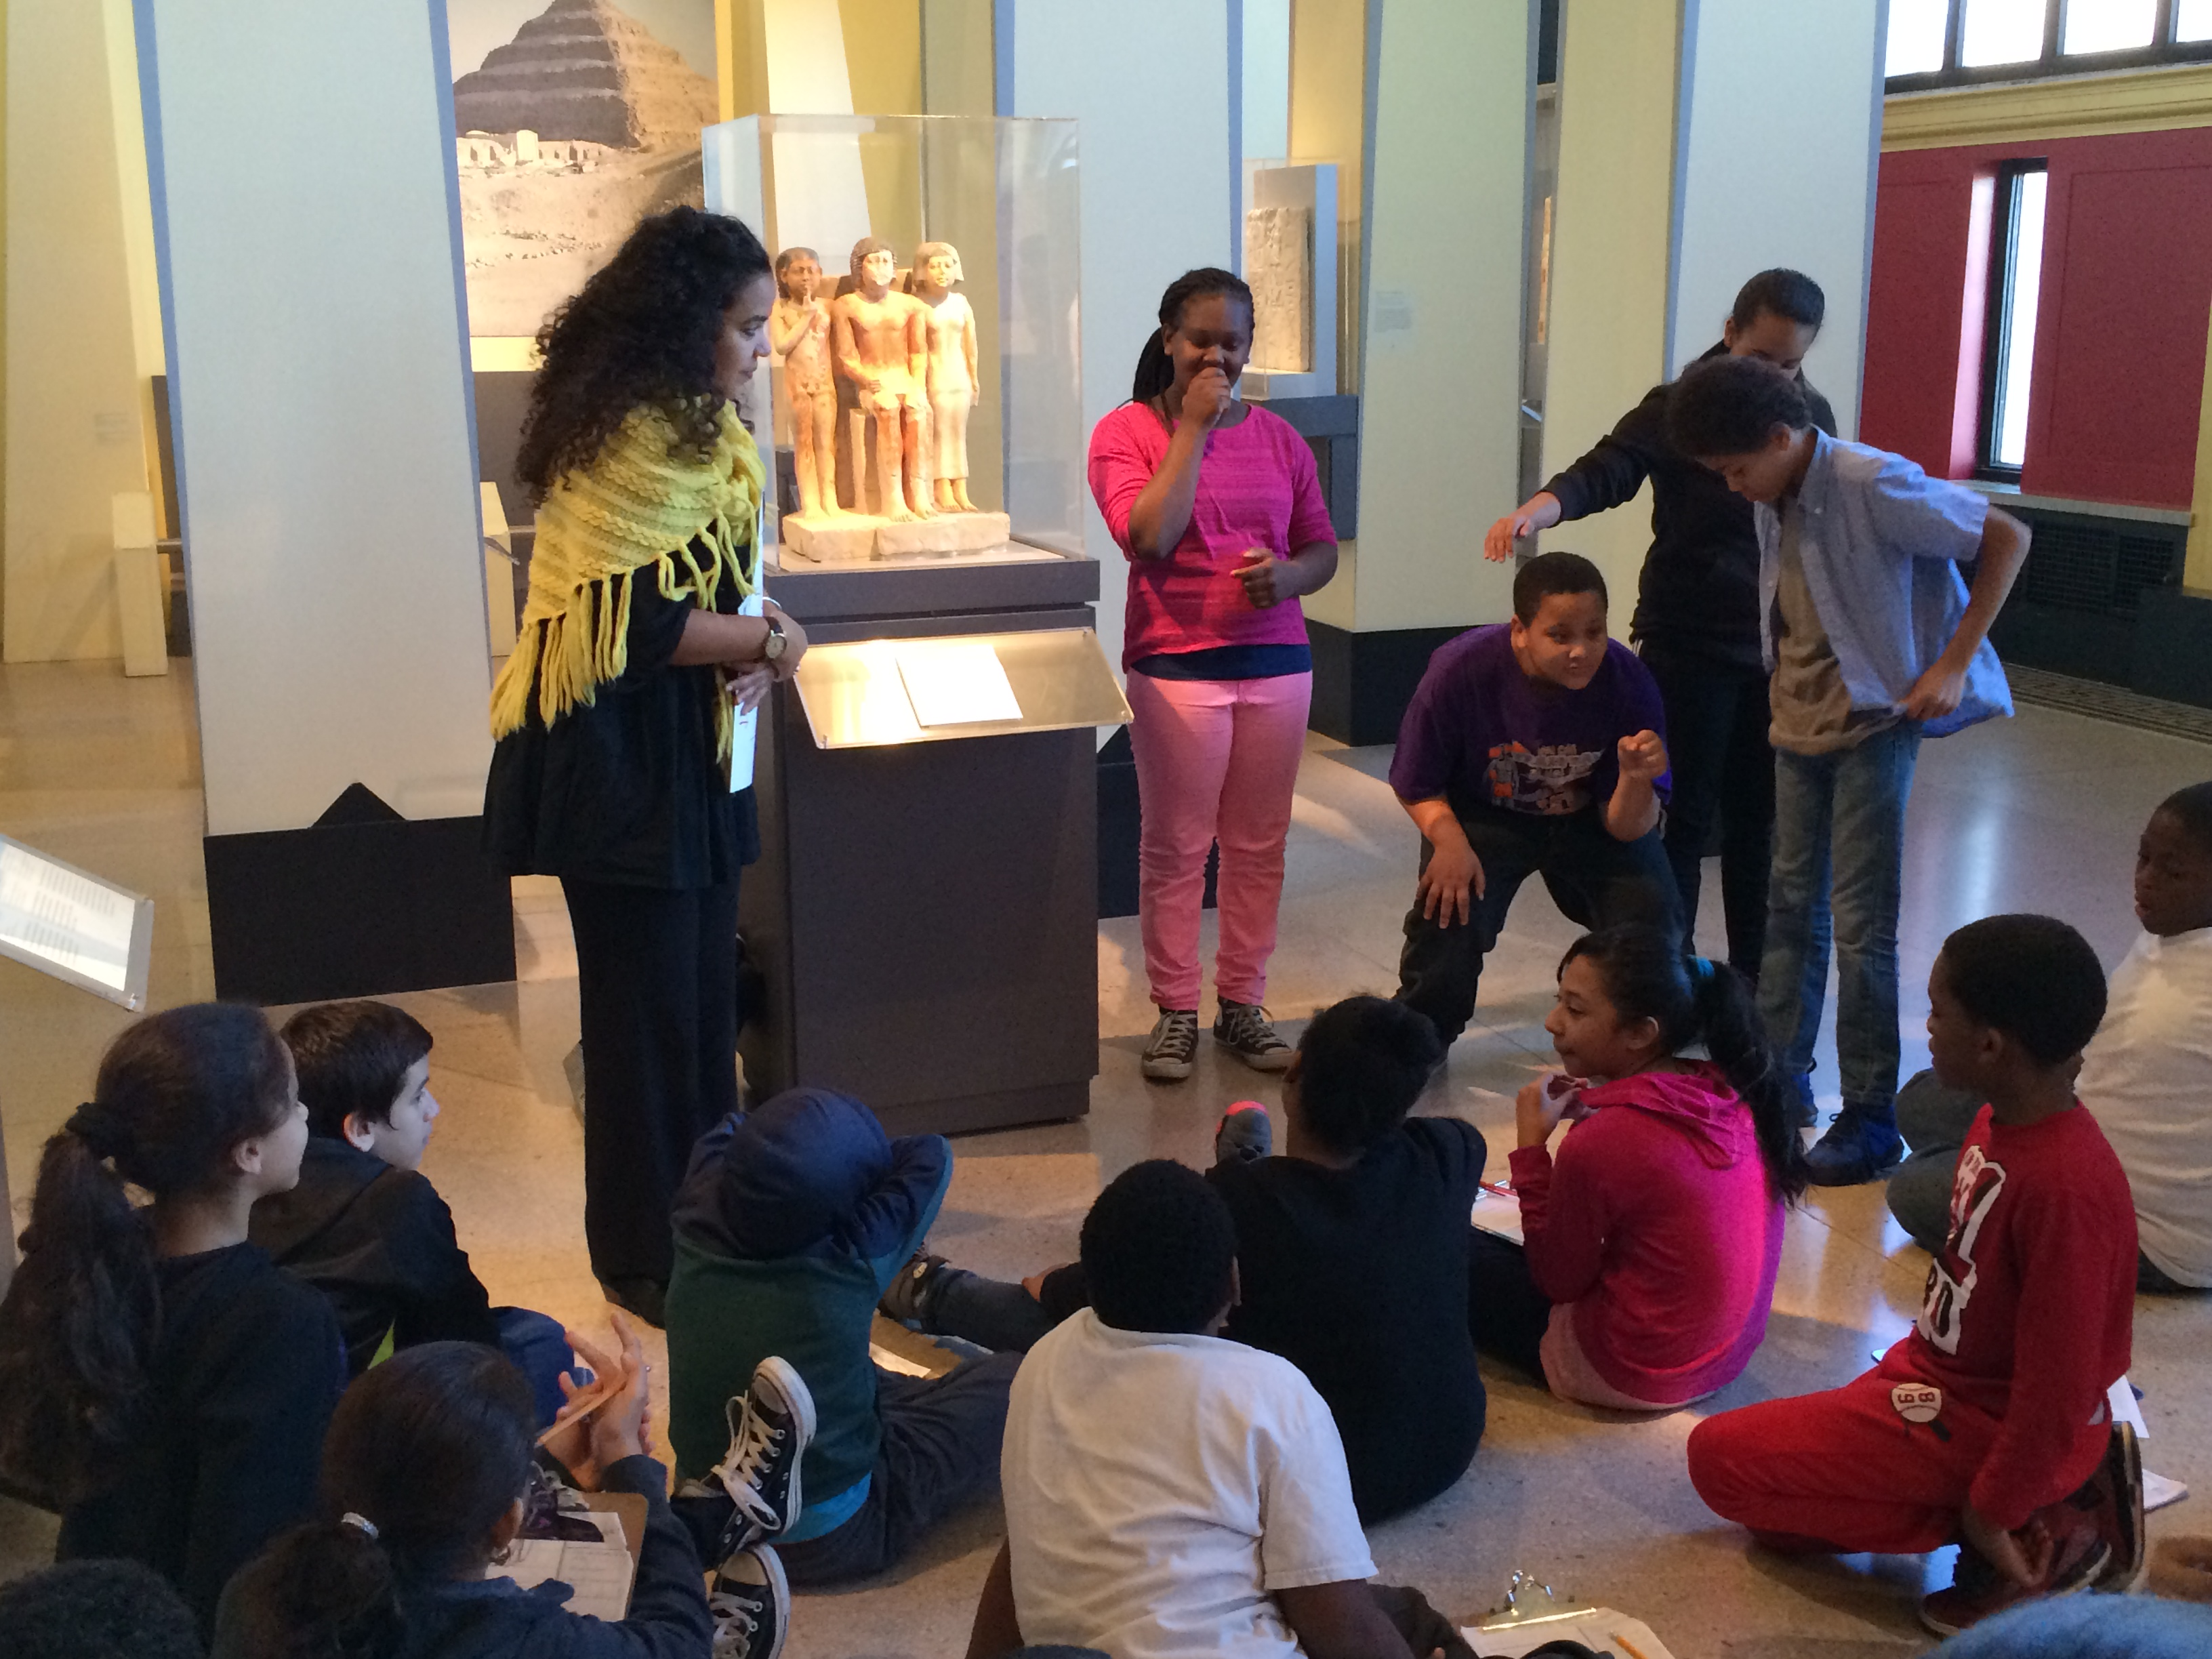 Schools And Museums Interview With Jody Madell